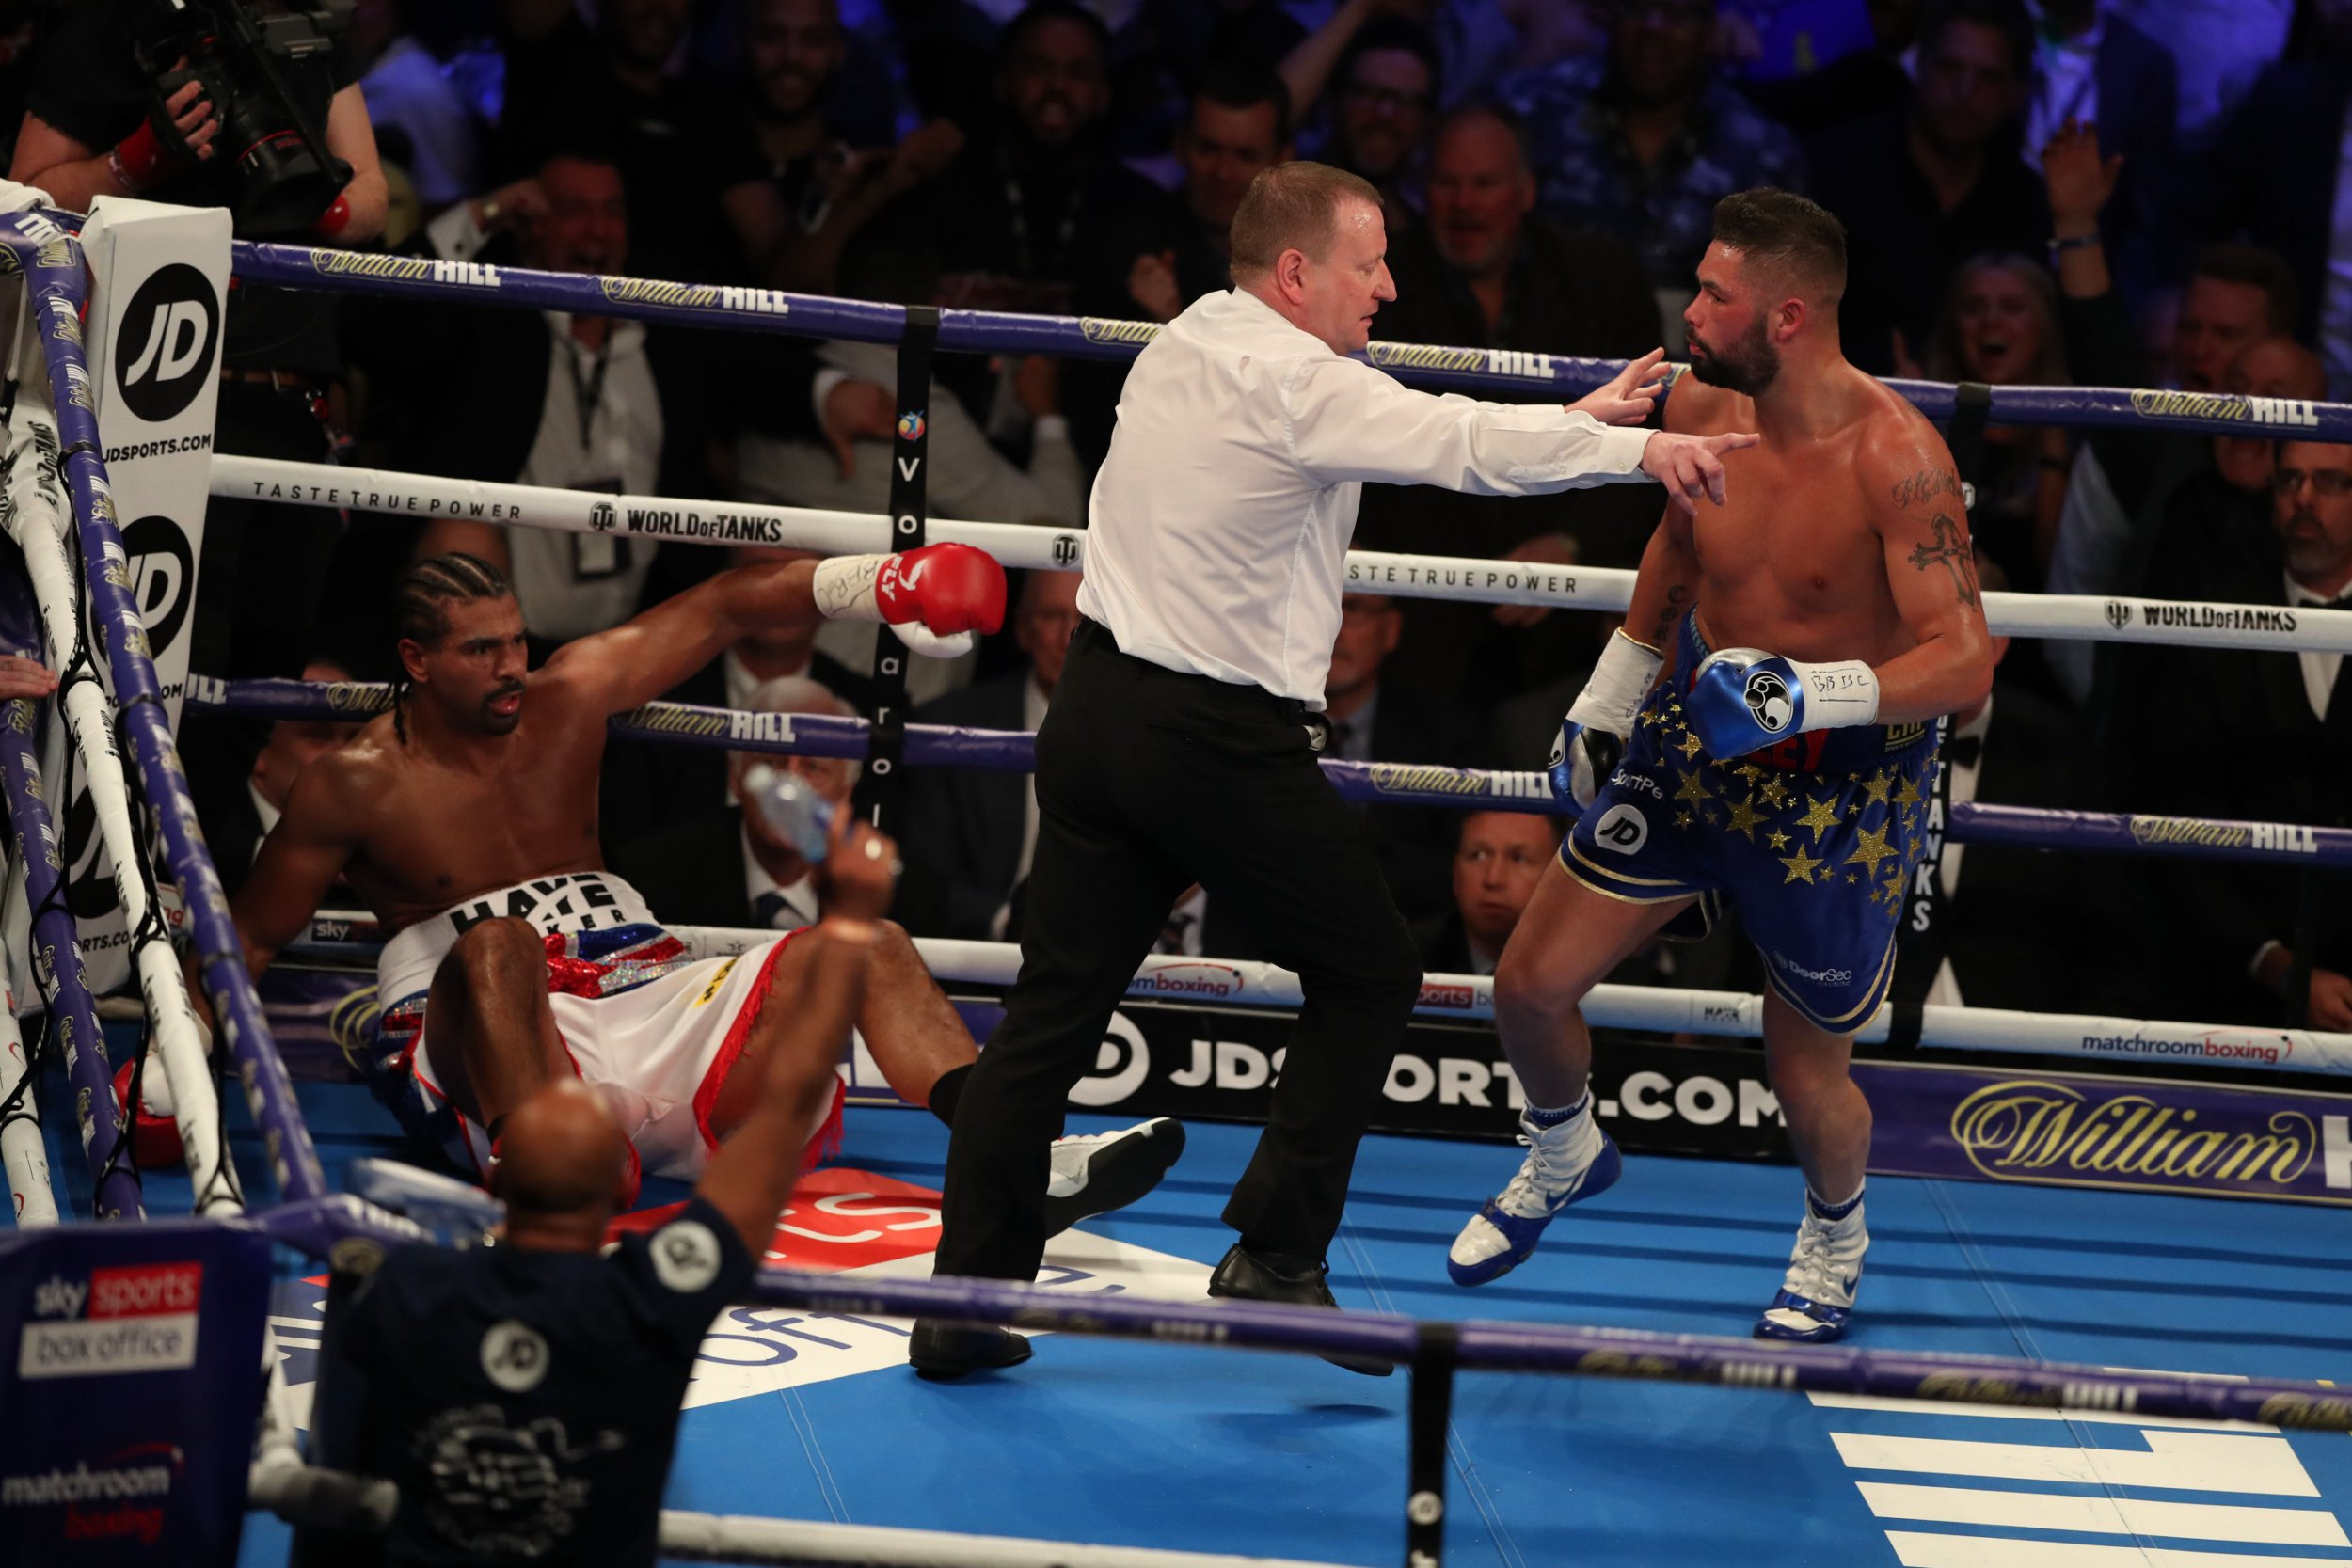 TOPSHOT - British boxer David Haye (L) sits on the canvas as boxer Tony Bellew is sent to his corner during their heavyweight rematch at the O2 Arena in London on May 5, 2018. / AFP PHOTO / Daniel LEAL-OLIVASDANIEL LEAL-OLIVAS/AFP/Getty Images